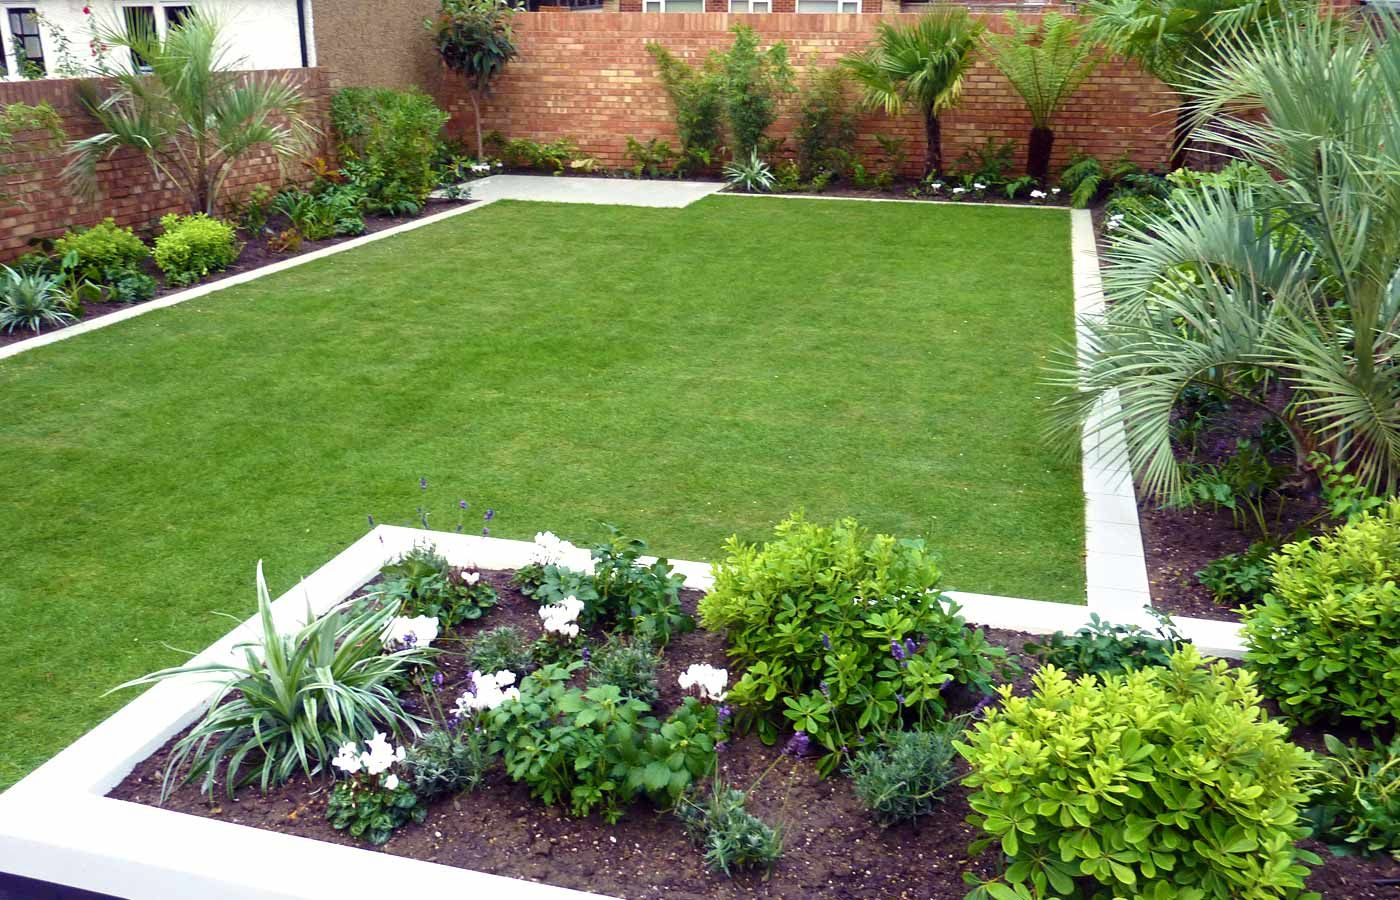 Simple Backyard Outdoor Garden with Large Green Grass and Some Palm Trees  Decorating also Brick Fence for Modern Garden Design Ideas